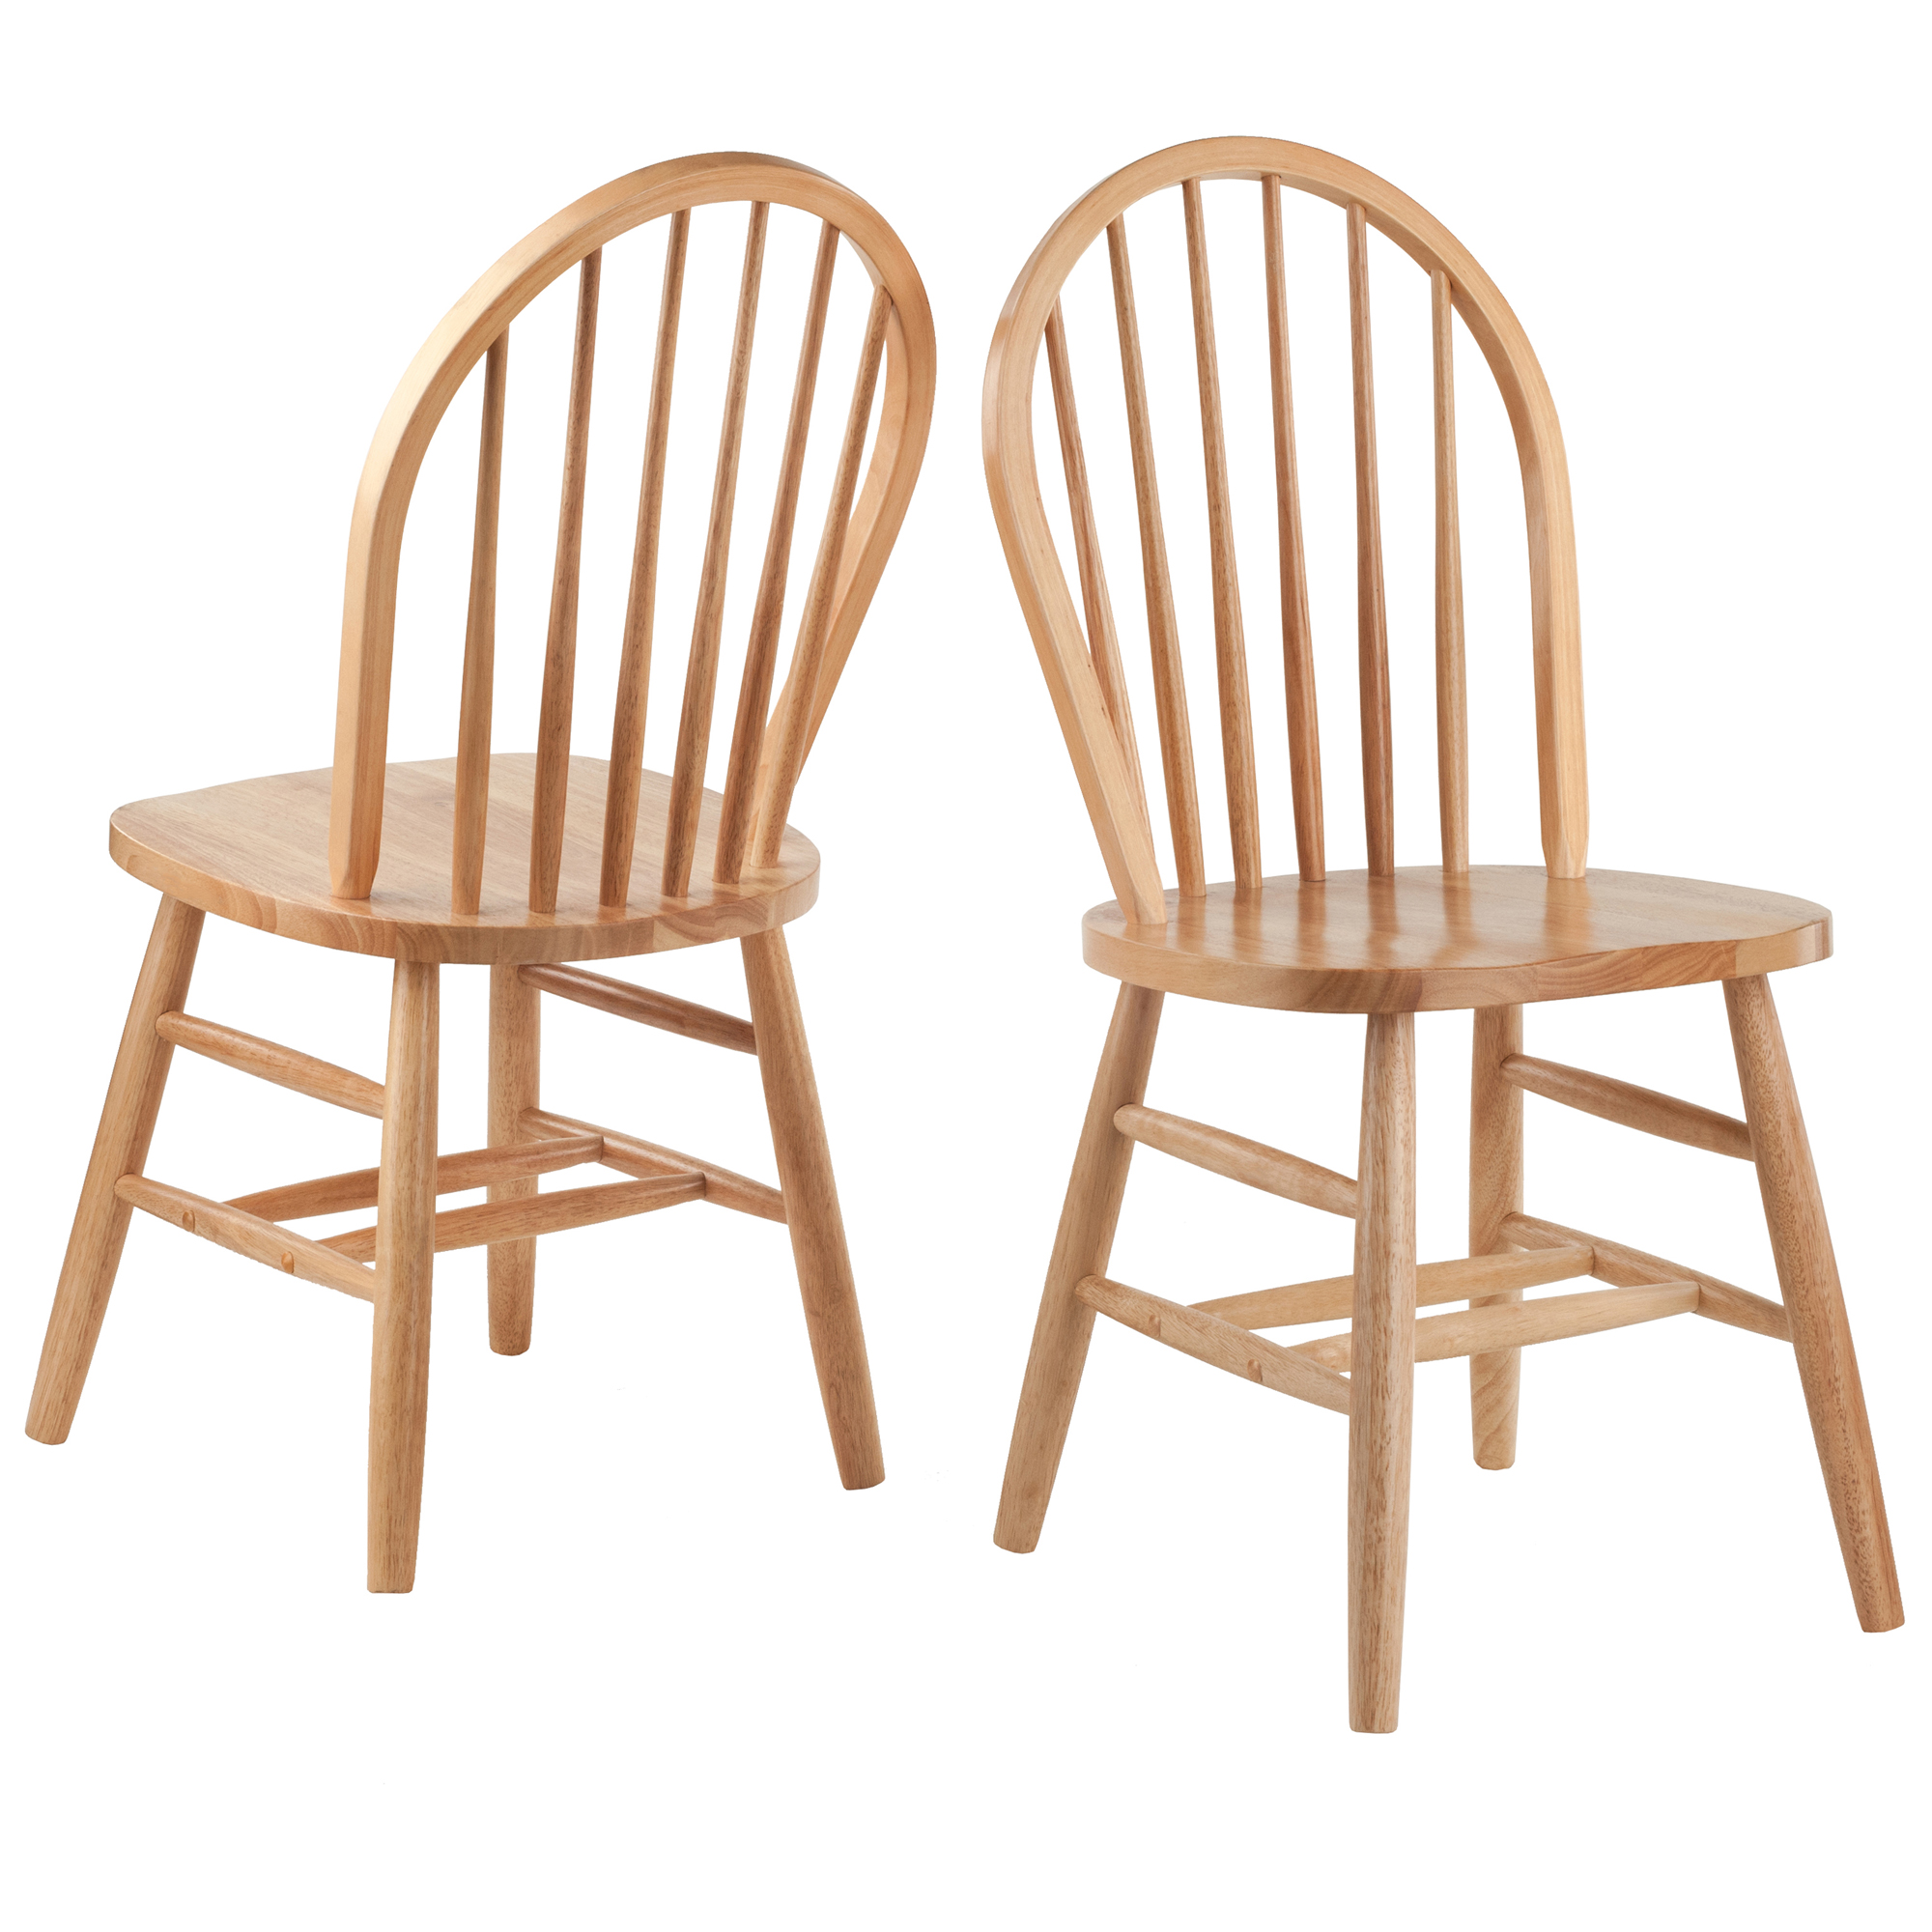 Winsome Wood Windsor Chair 2-Piece Set RTA, Natural Finish